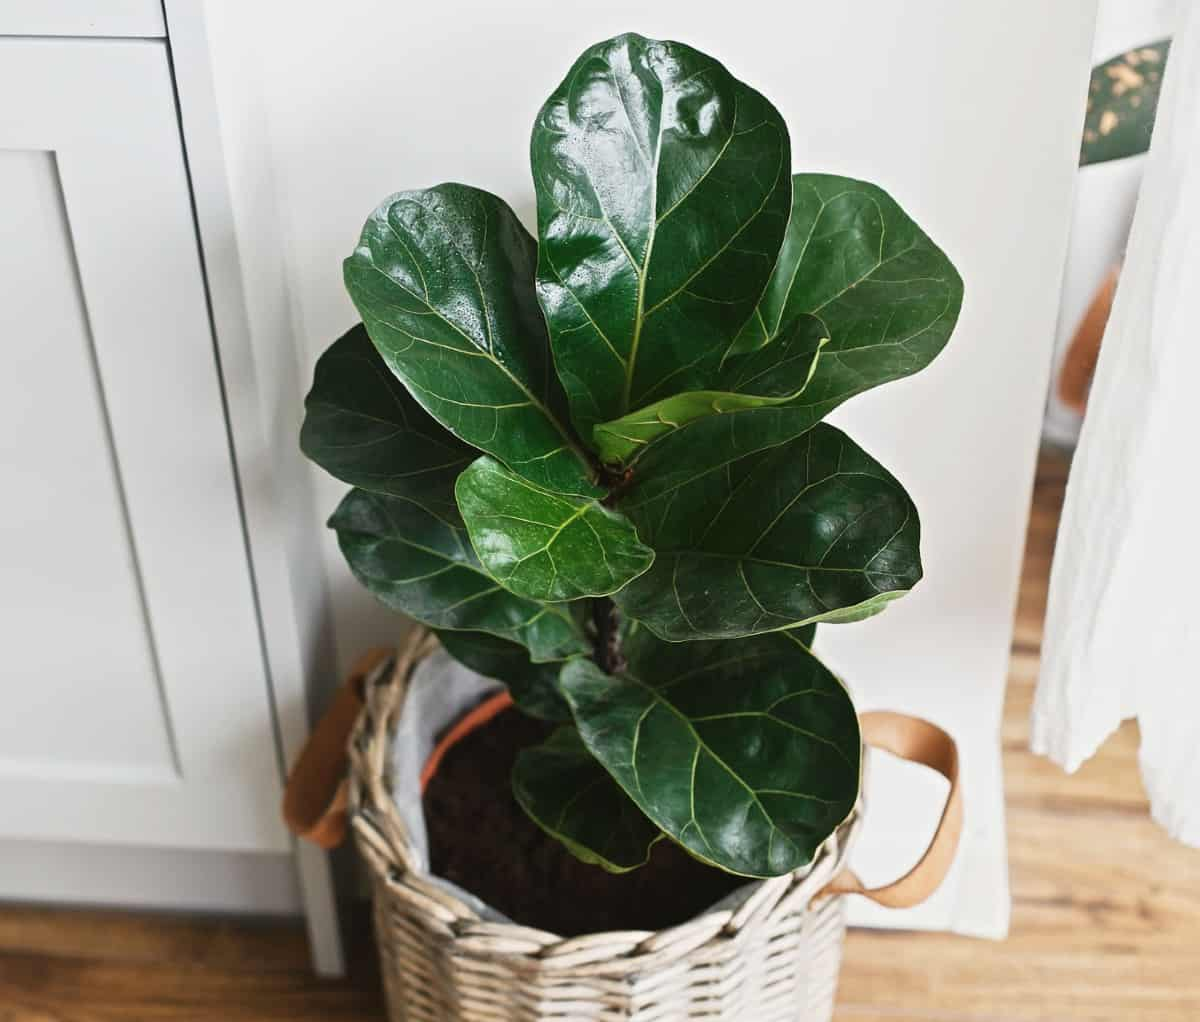 Fiddle leaf fig plants are ideal for apartment living.